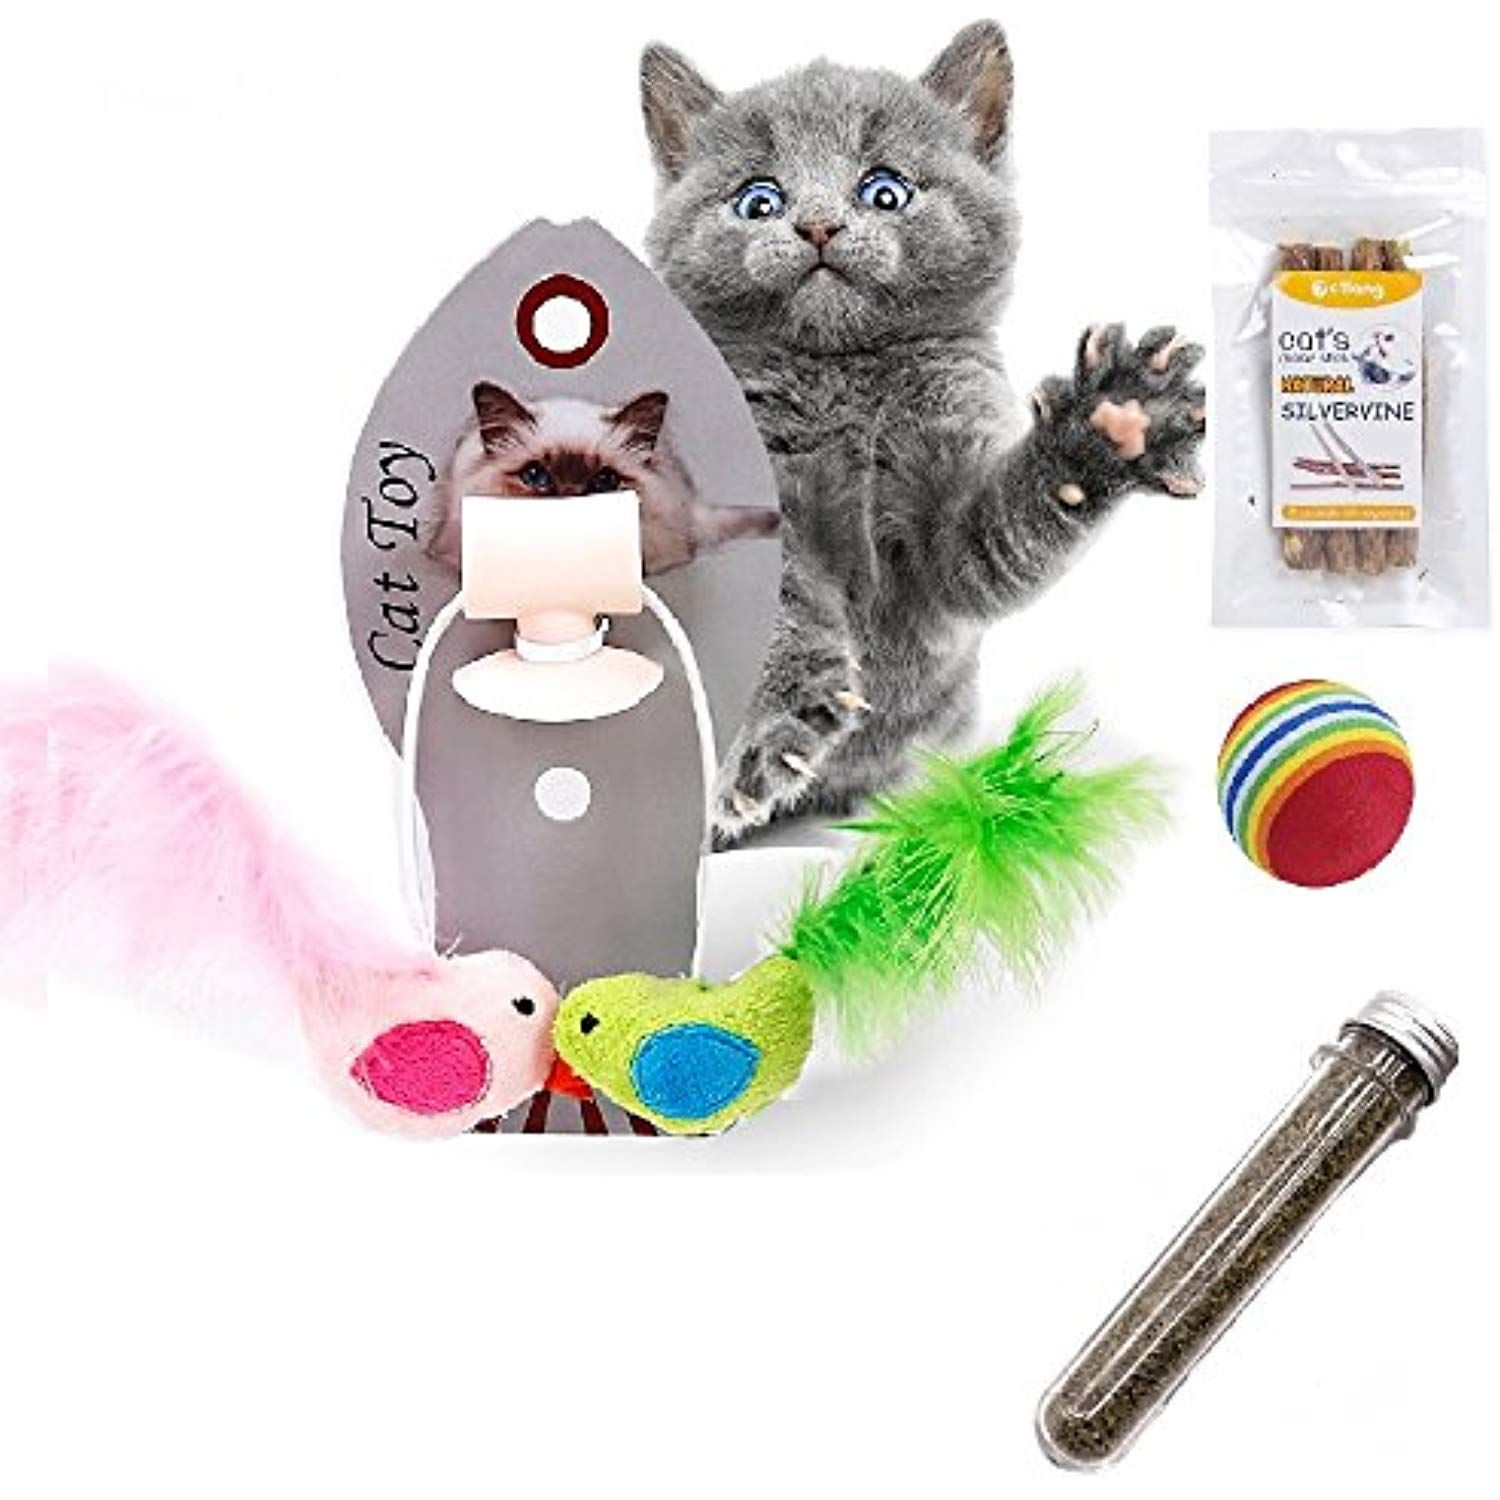 Afuby Wall Playing Catnip Toys Silvervine Cat Catnip Sticks Cat Feather Toys Cat Rainbow Ball Best Interactive Cat Toys Homemade Cat Toys Interactive Cat Toys